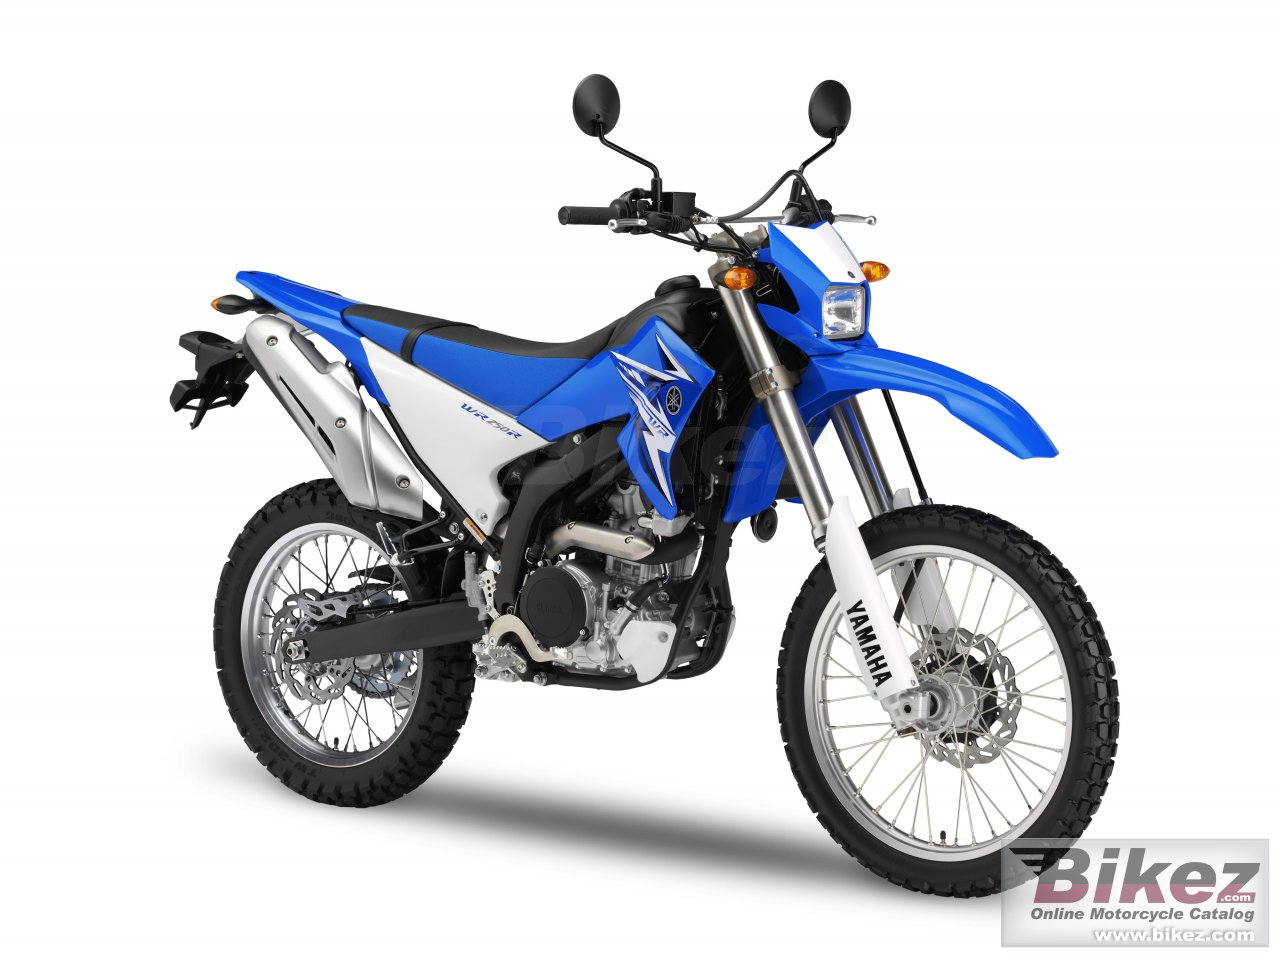 Big Yamaha wr250r picture and wallpaper from Bikez.com